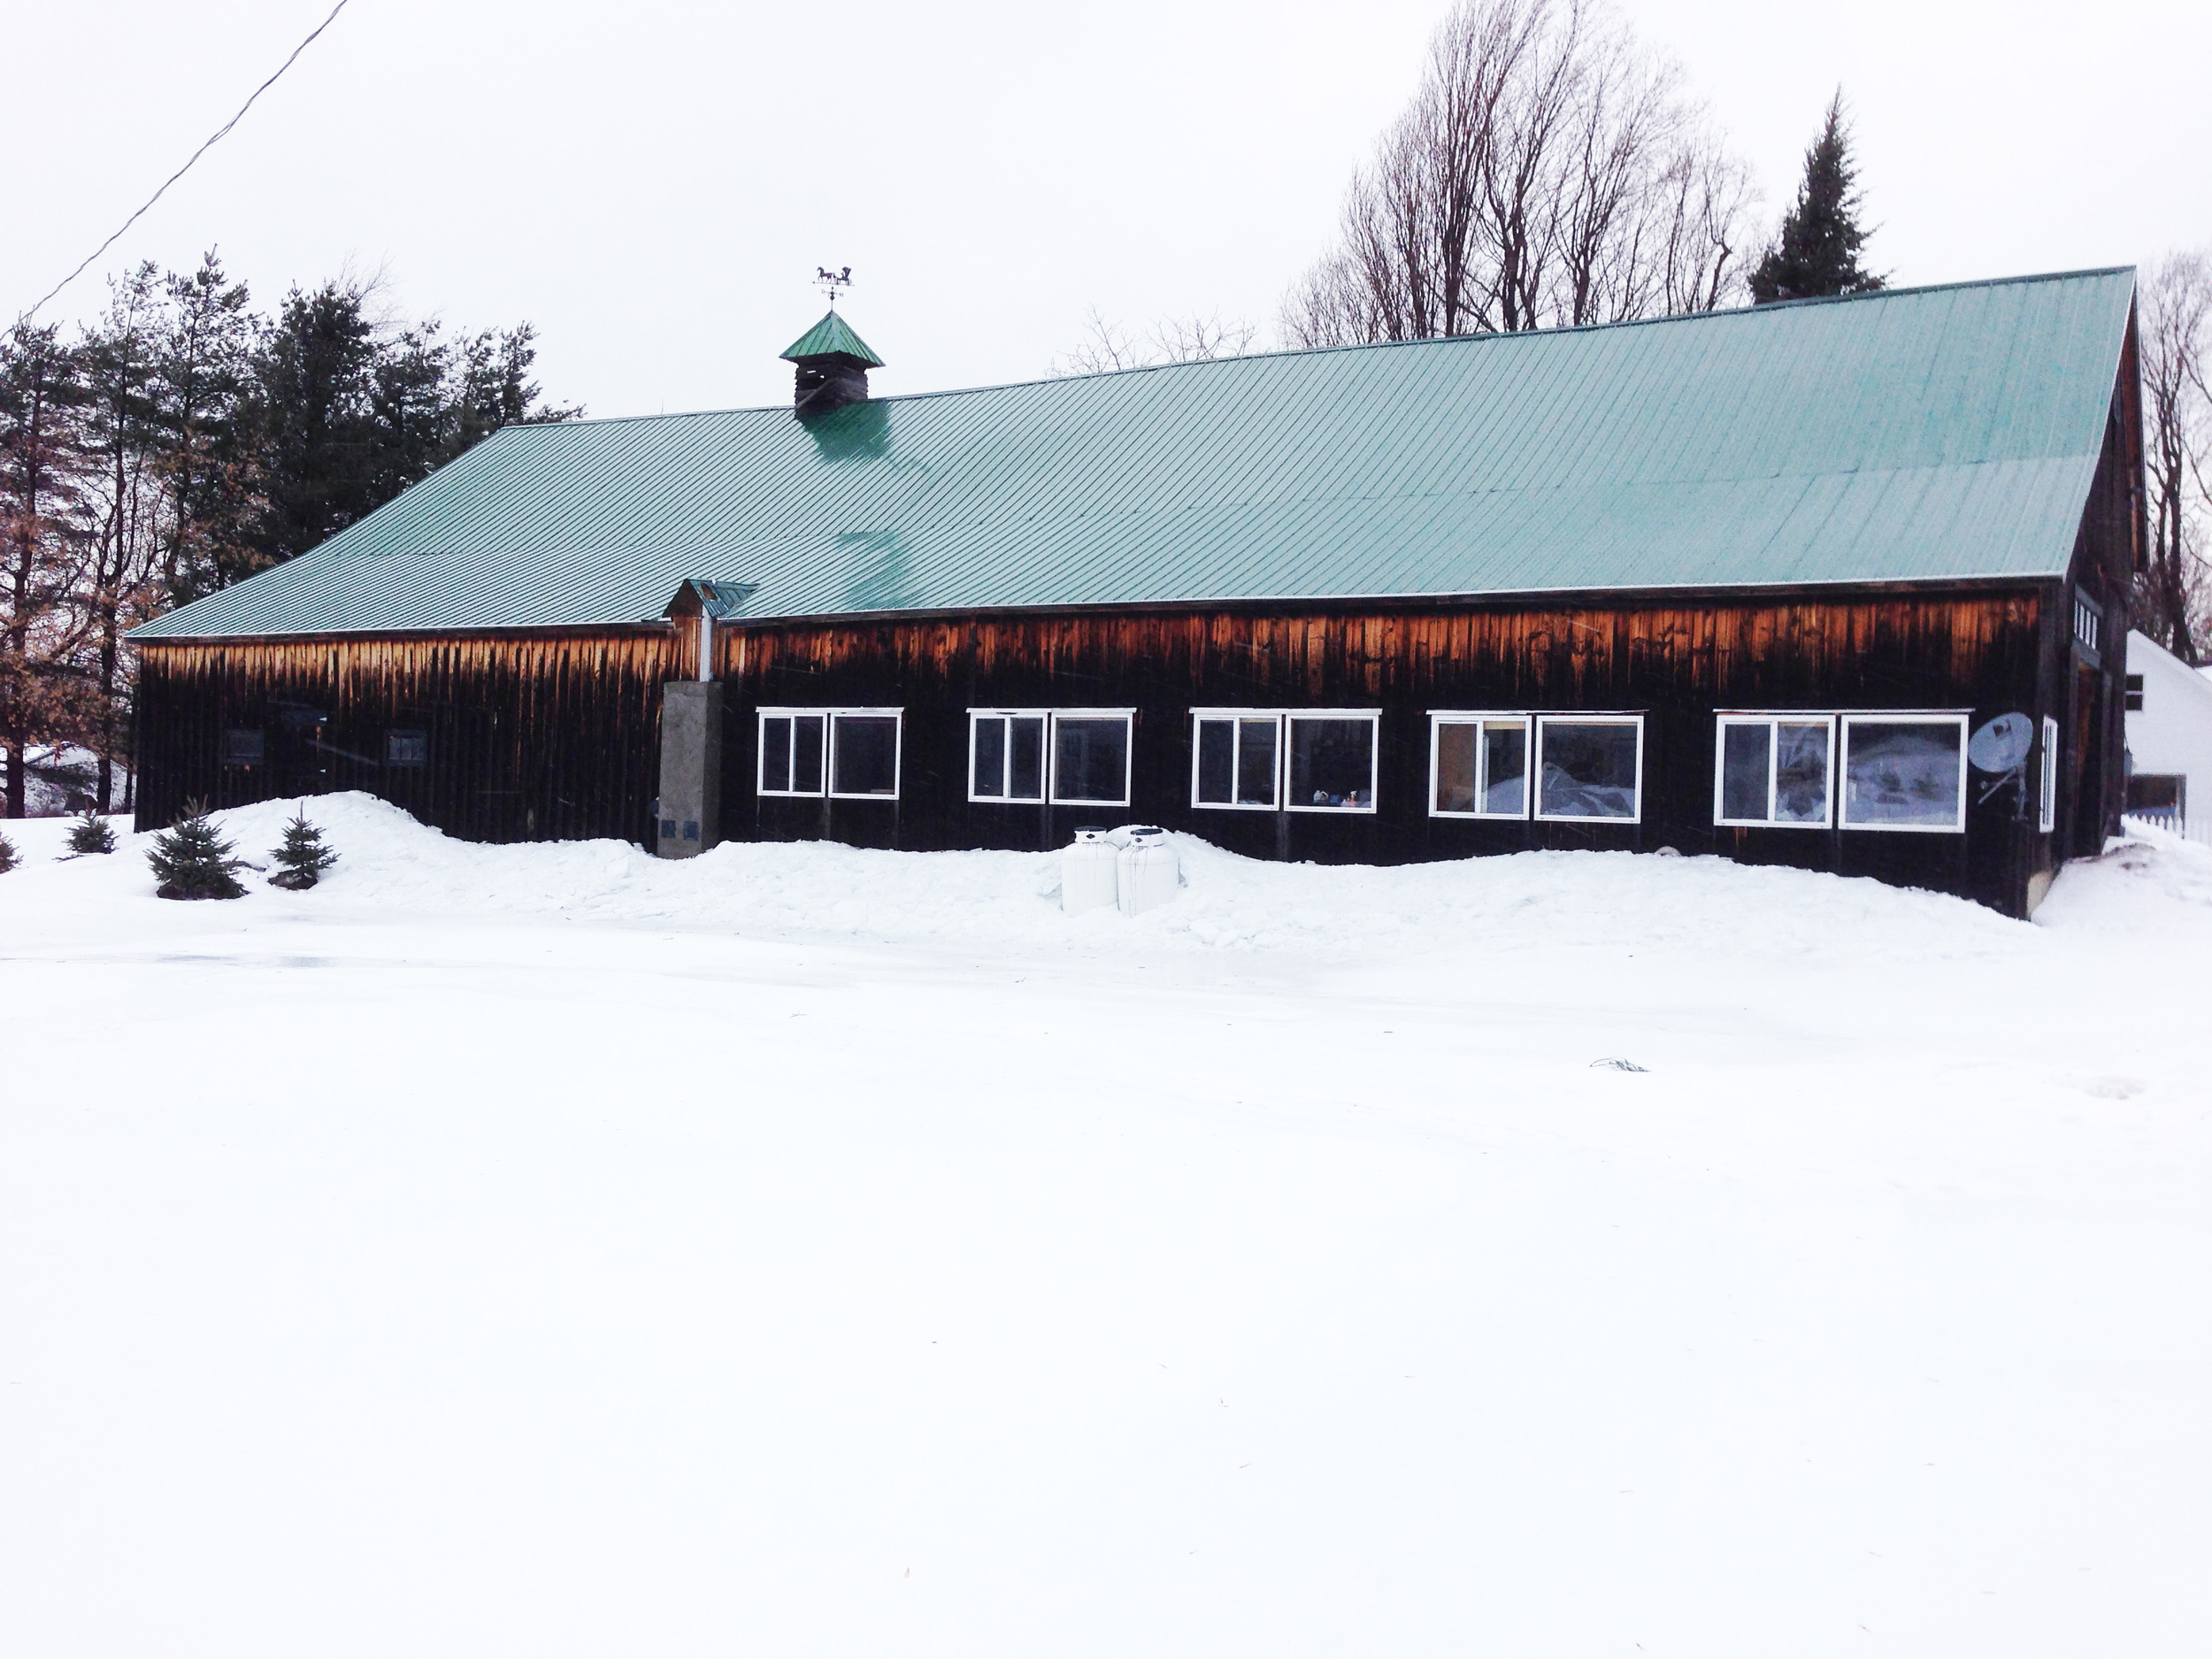 """The home of """"The Senefelder Club of the North Country."""" In December, 2013, a build-up of snow and ice came sliding down off the metal roof and took out the chimney and four windows. The windows have now been replaced but the chimney is waiting on a contractor."""